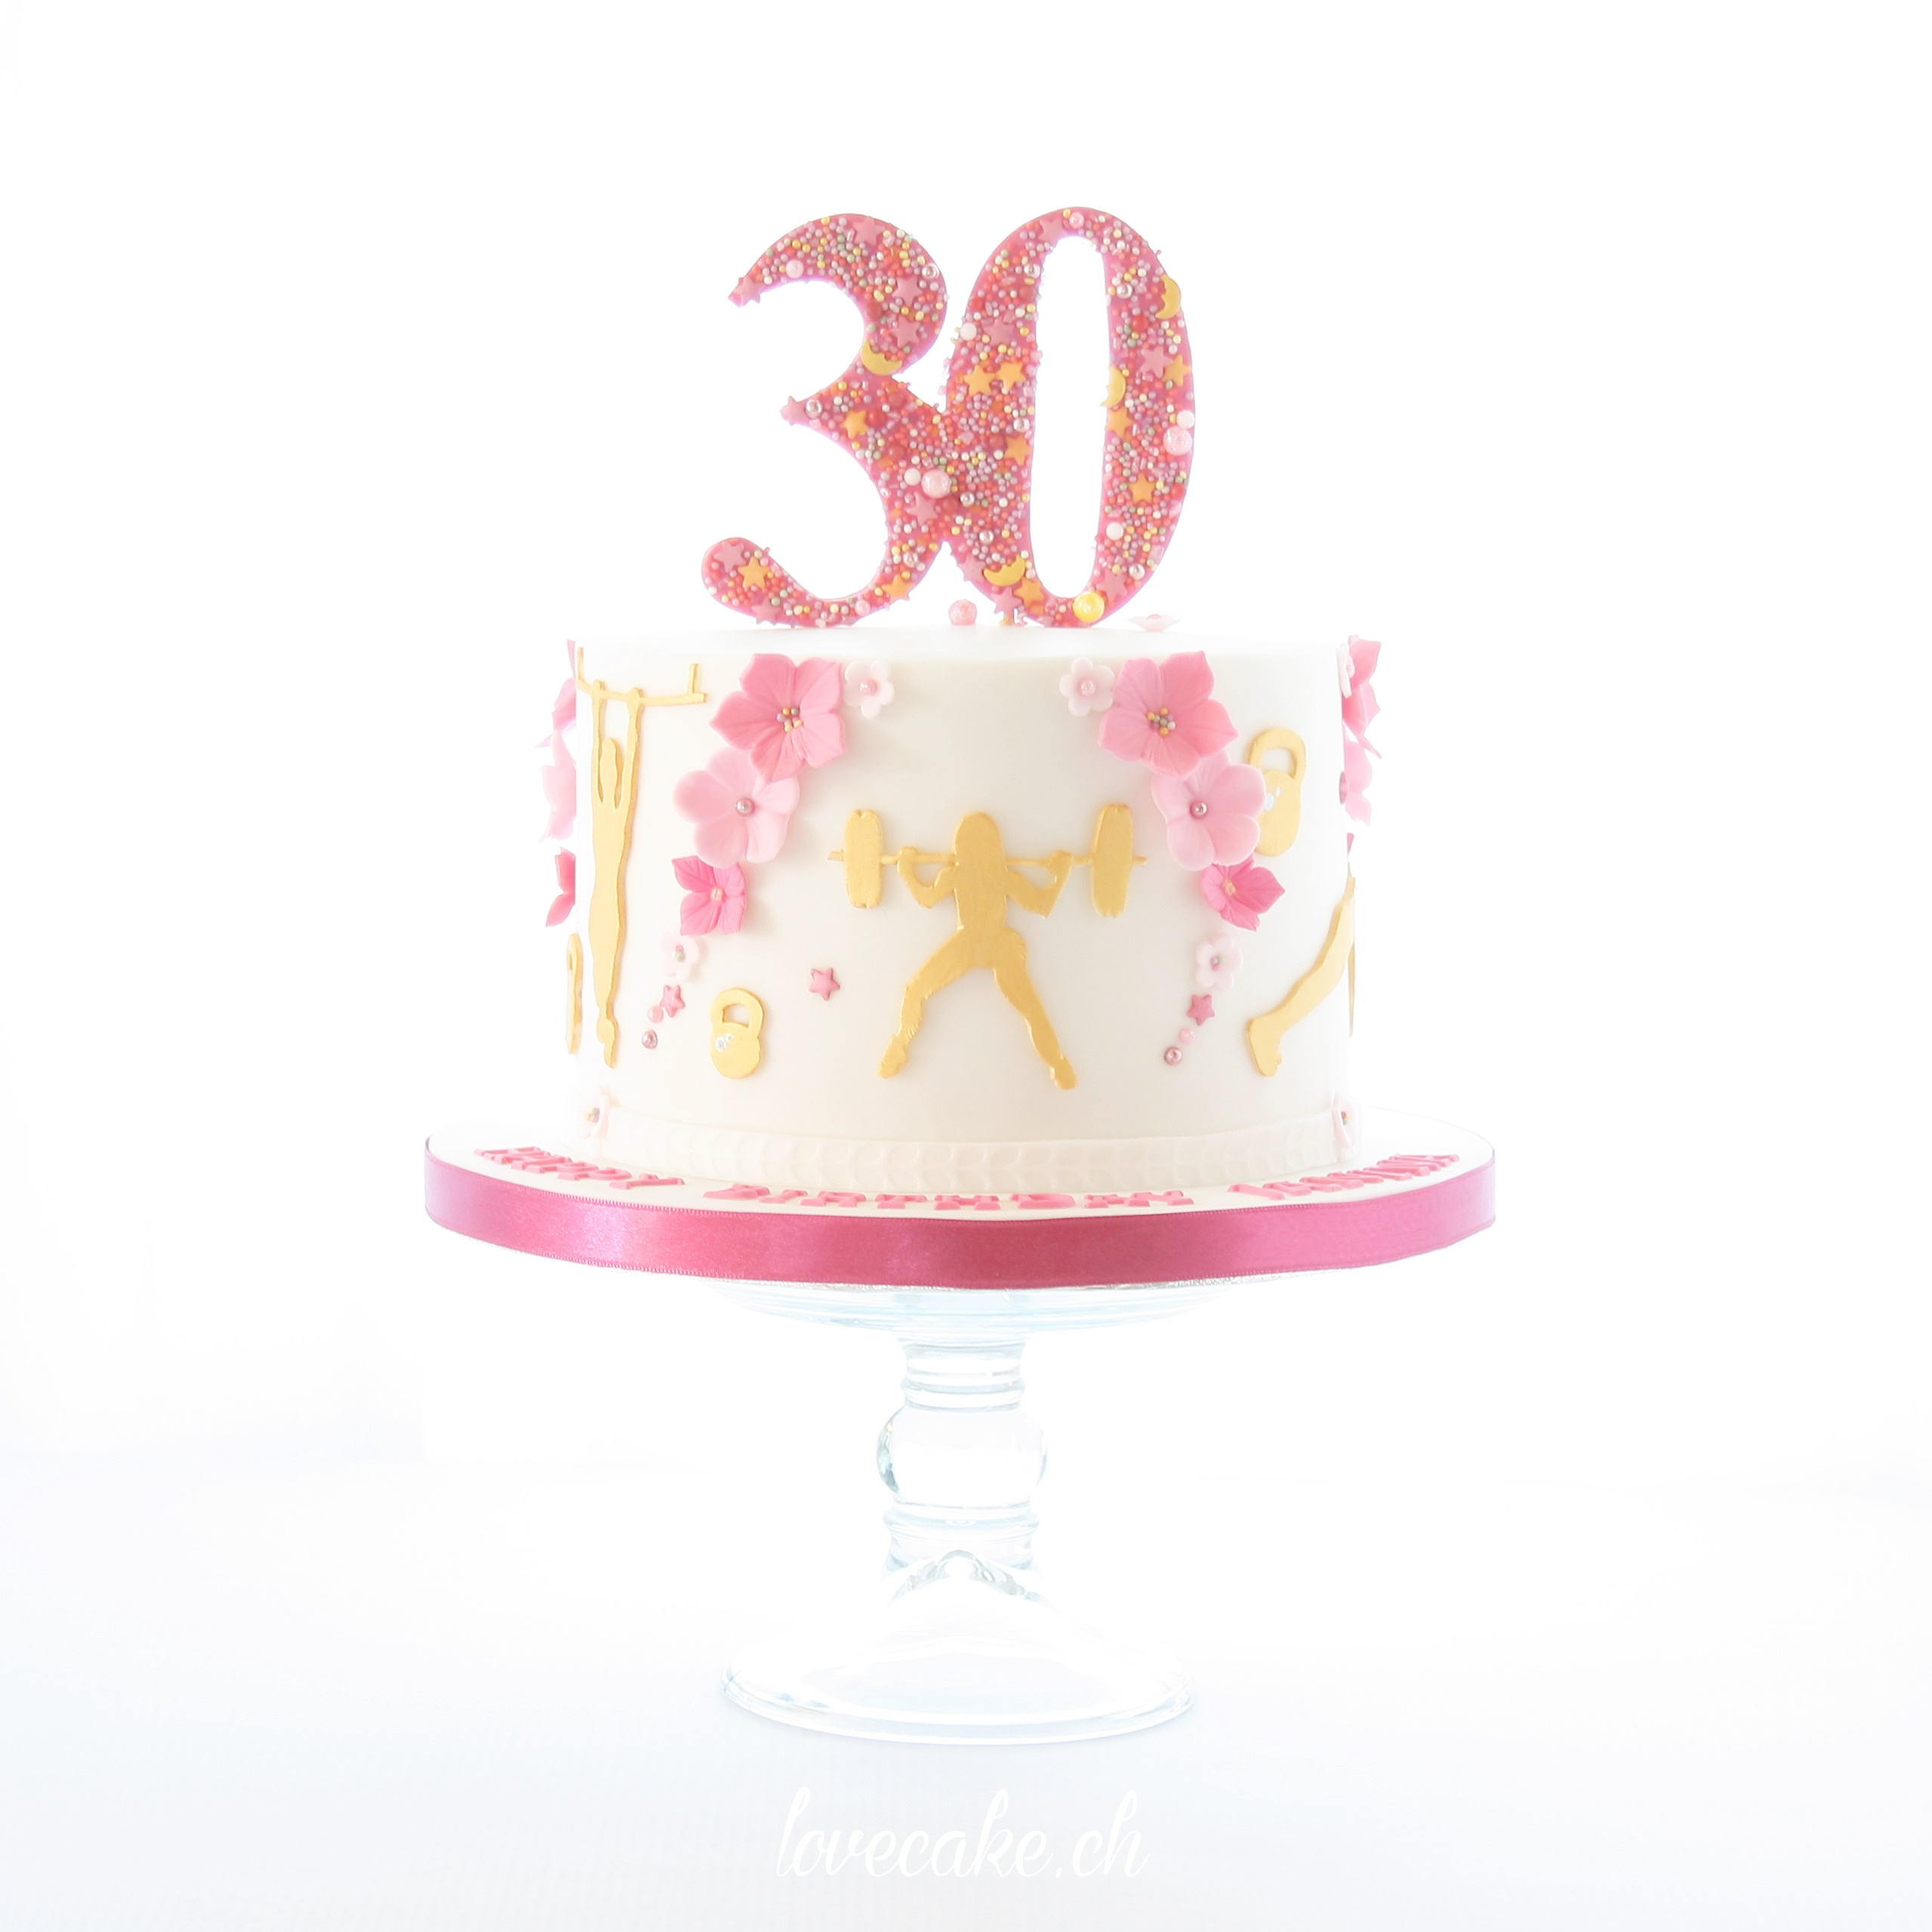 Mini white and pink birthday cake